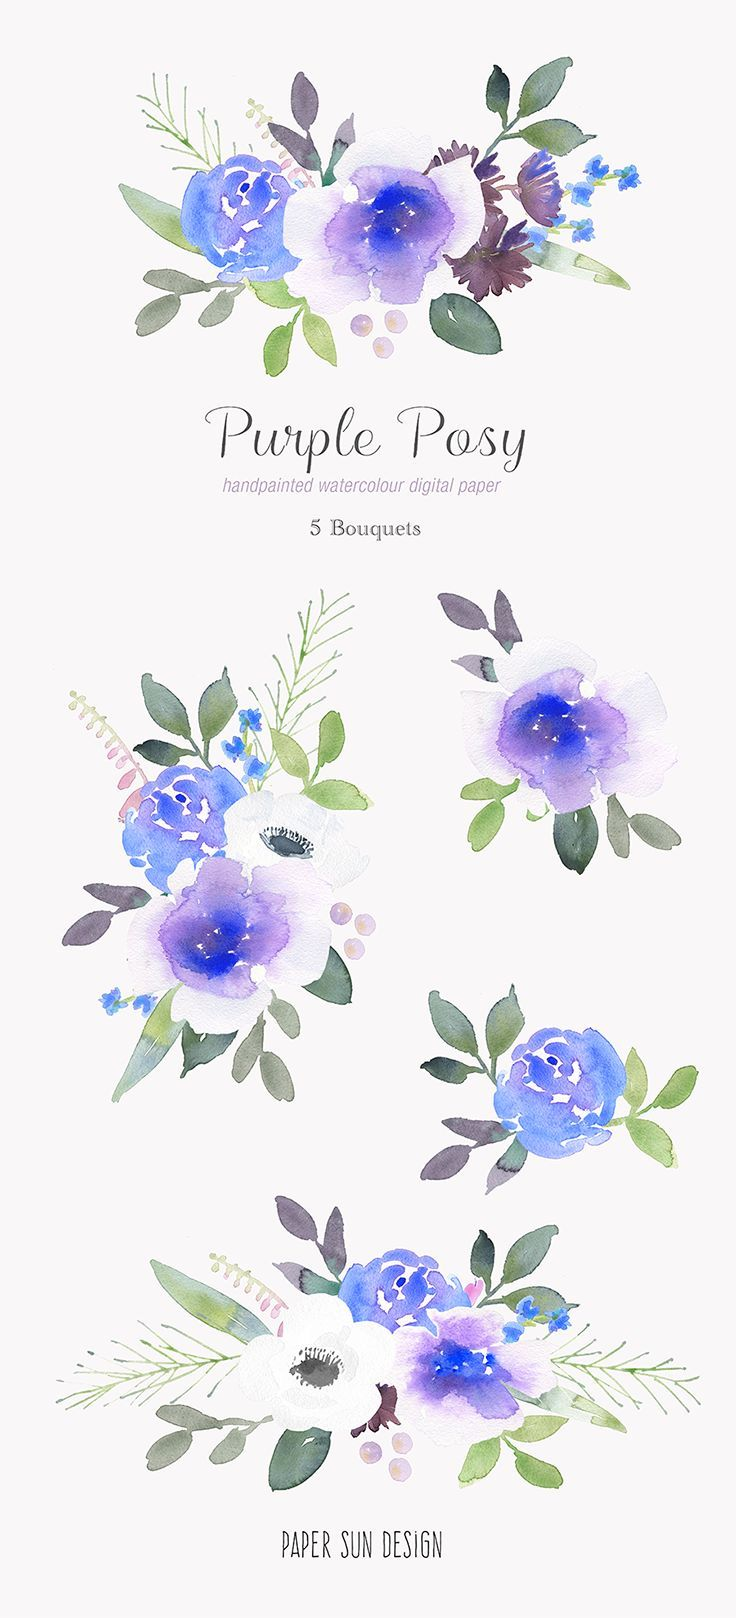 hight resolution of purple floral bouquet clip art graphics for weddings websites invitations branding and more